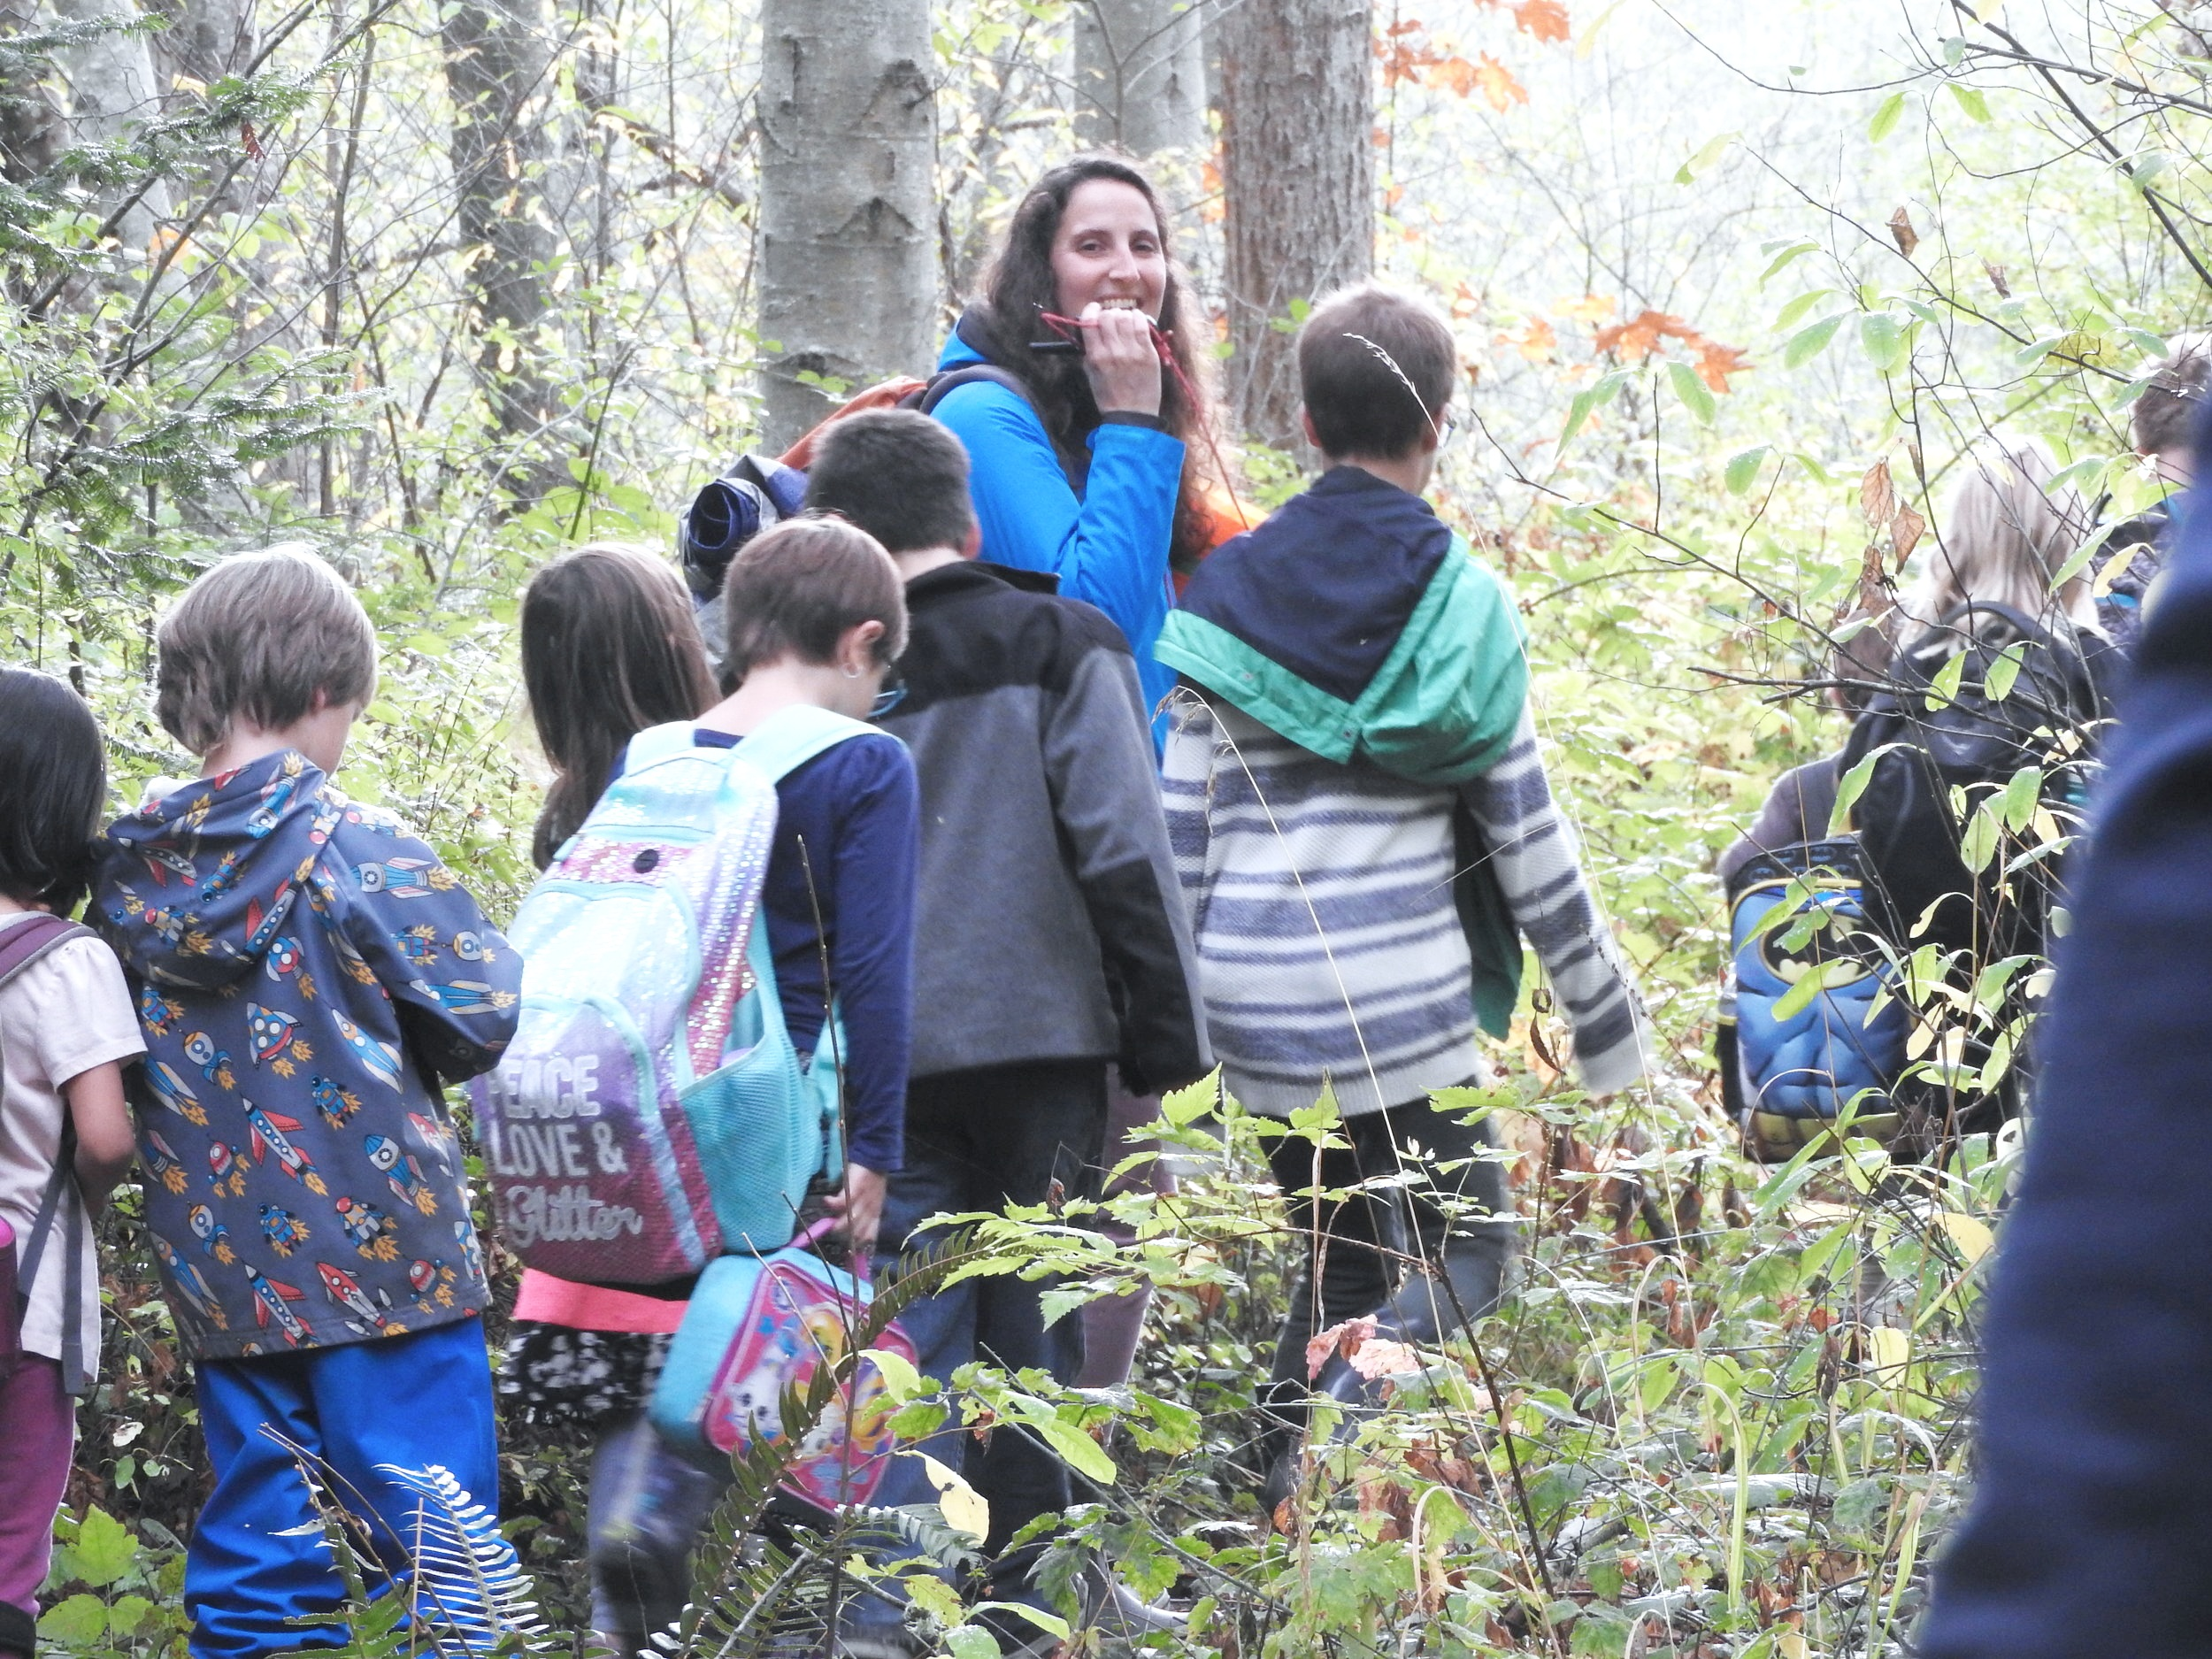 Sarah leading a group of children through the forest. Photo credit Kia Armstrong